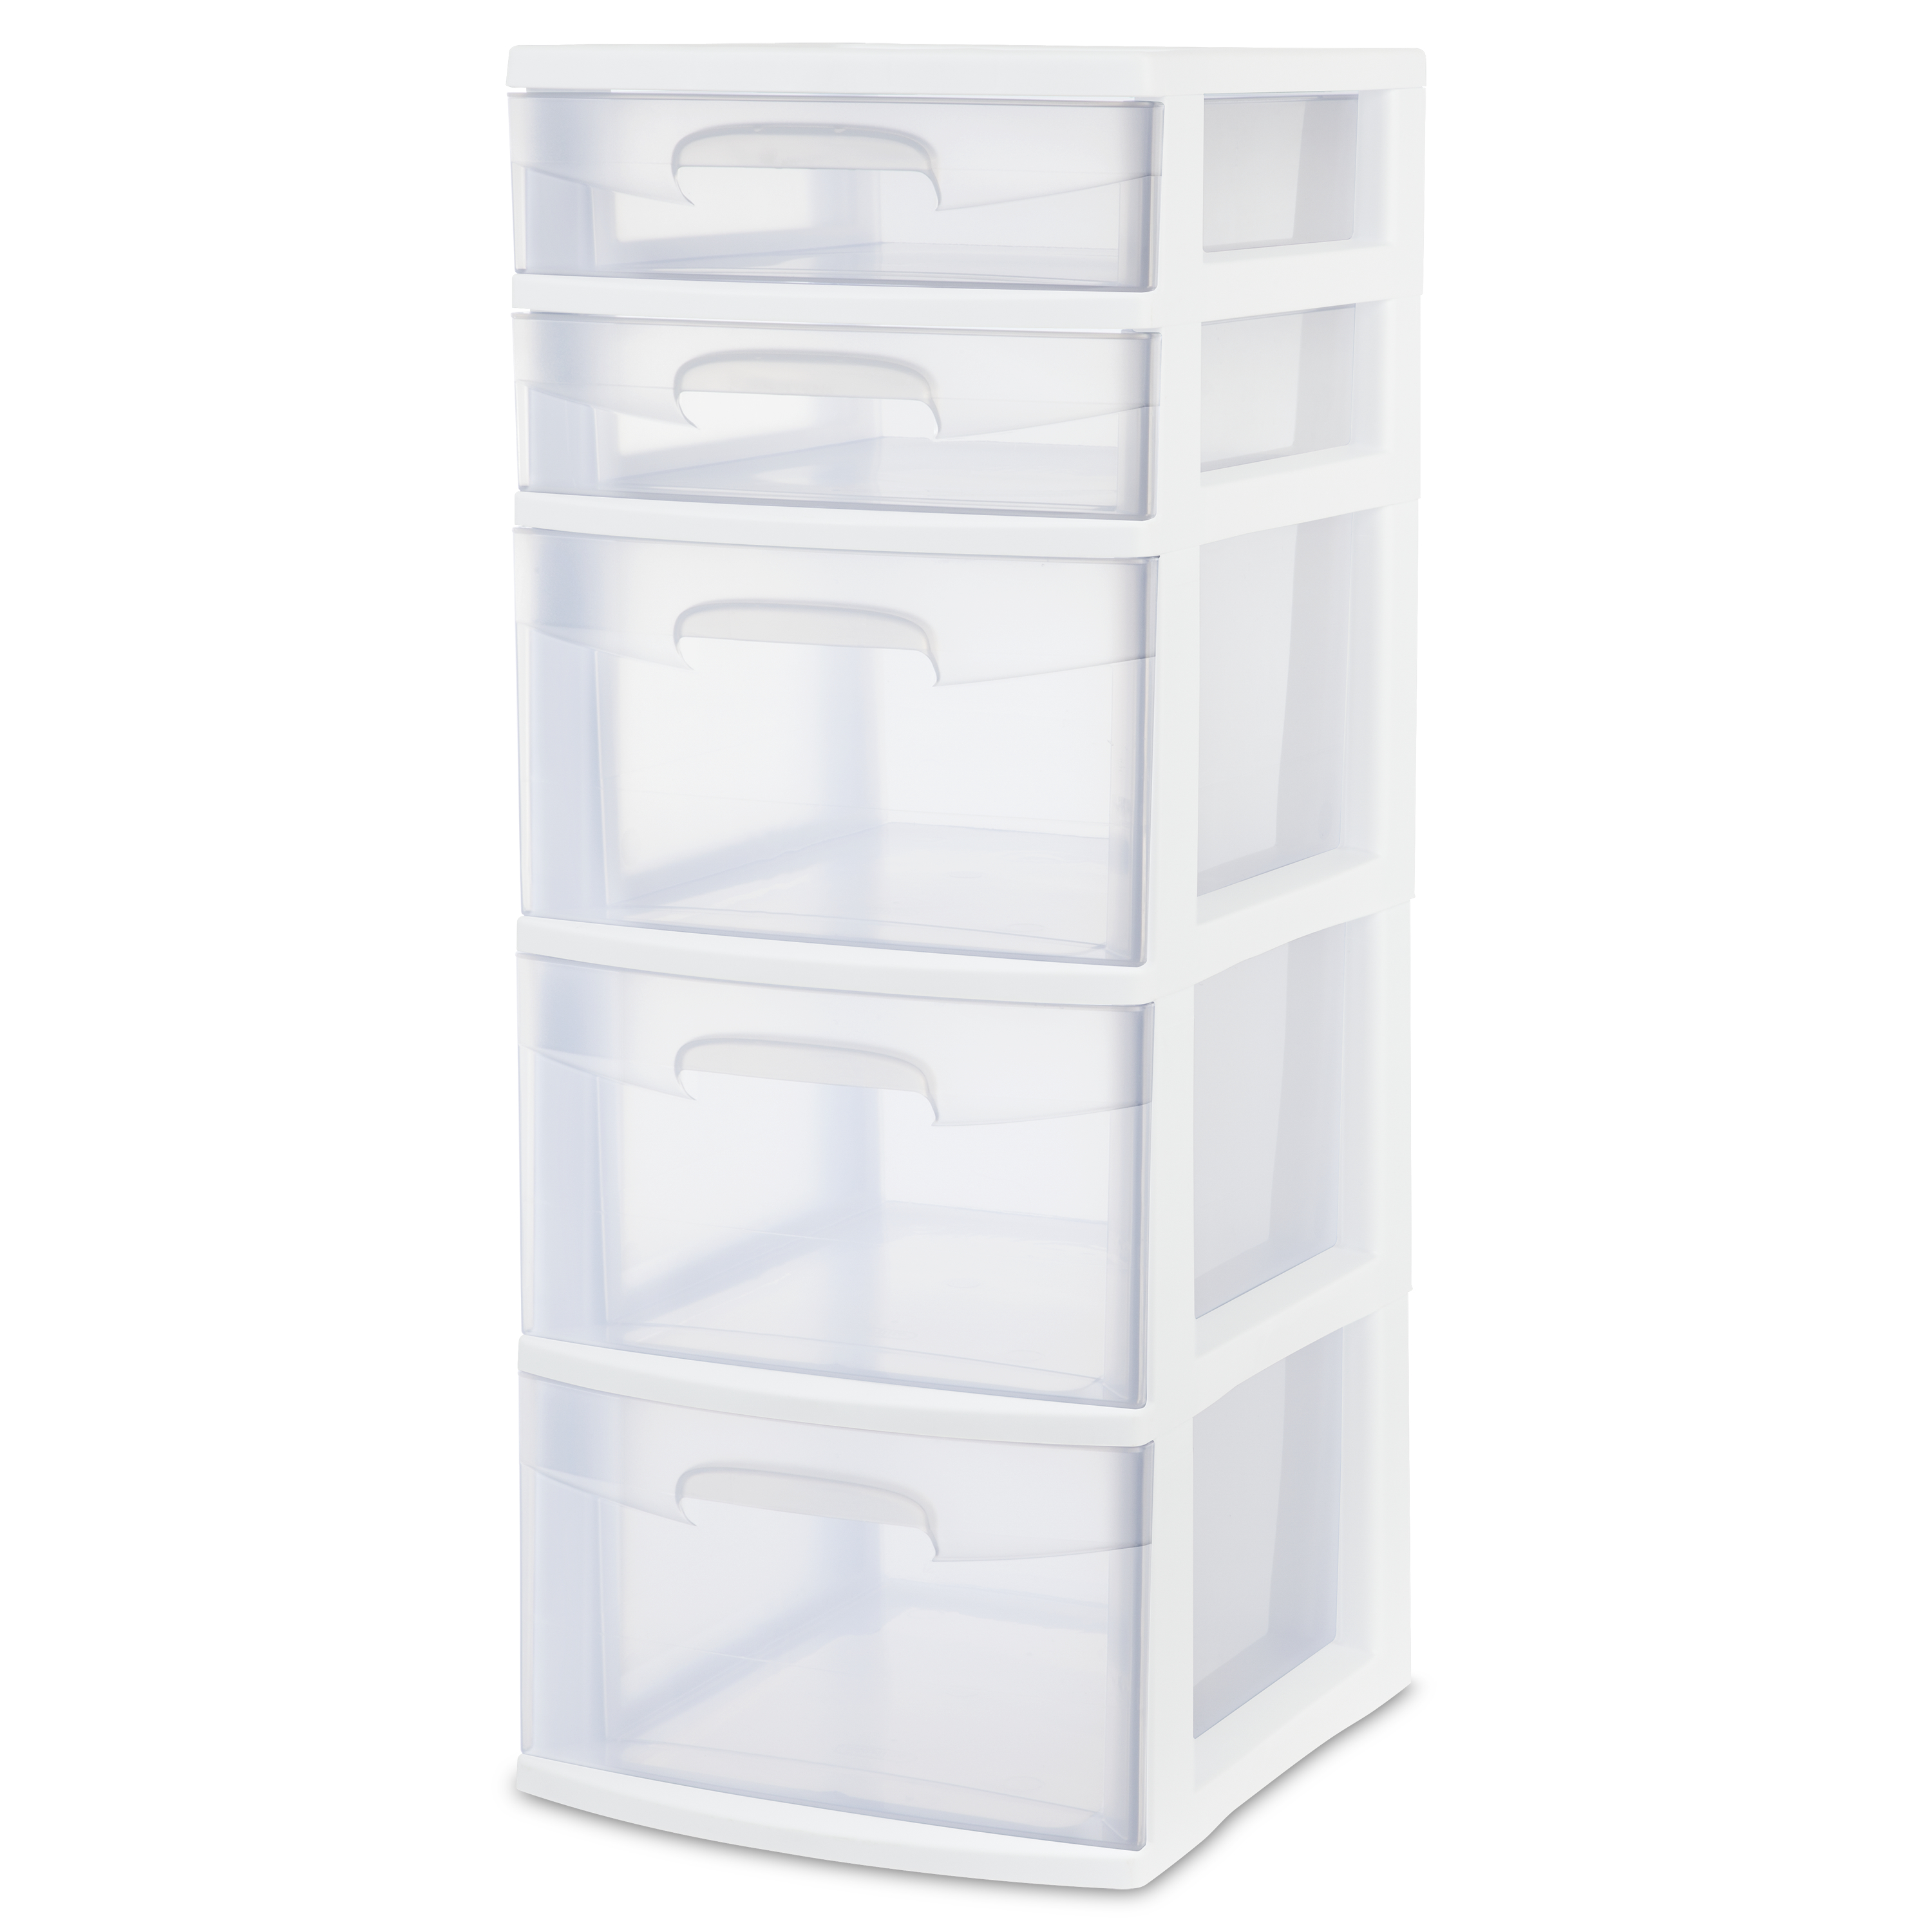 Sterilite 5 Drawer Tower -  White (available In Case Of 2 Or Single